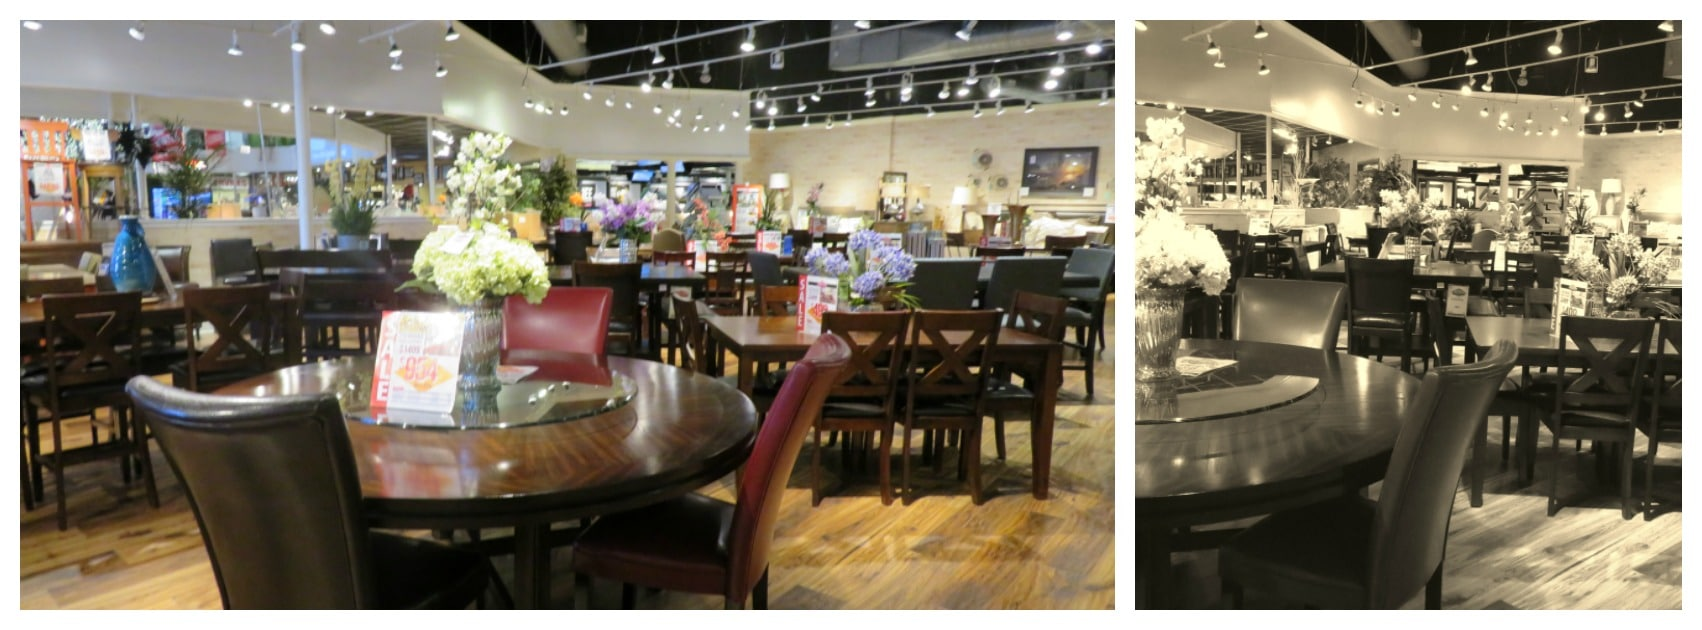 Dining Sets at Underpriced Furniture